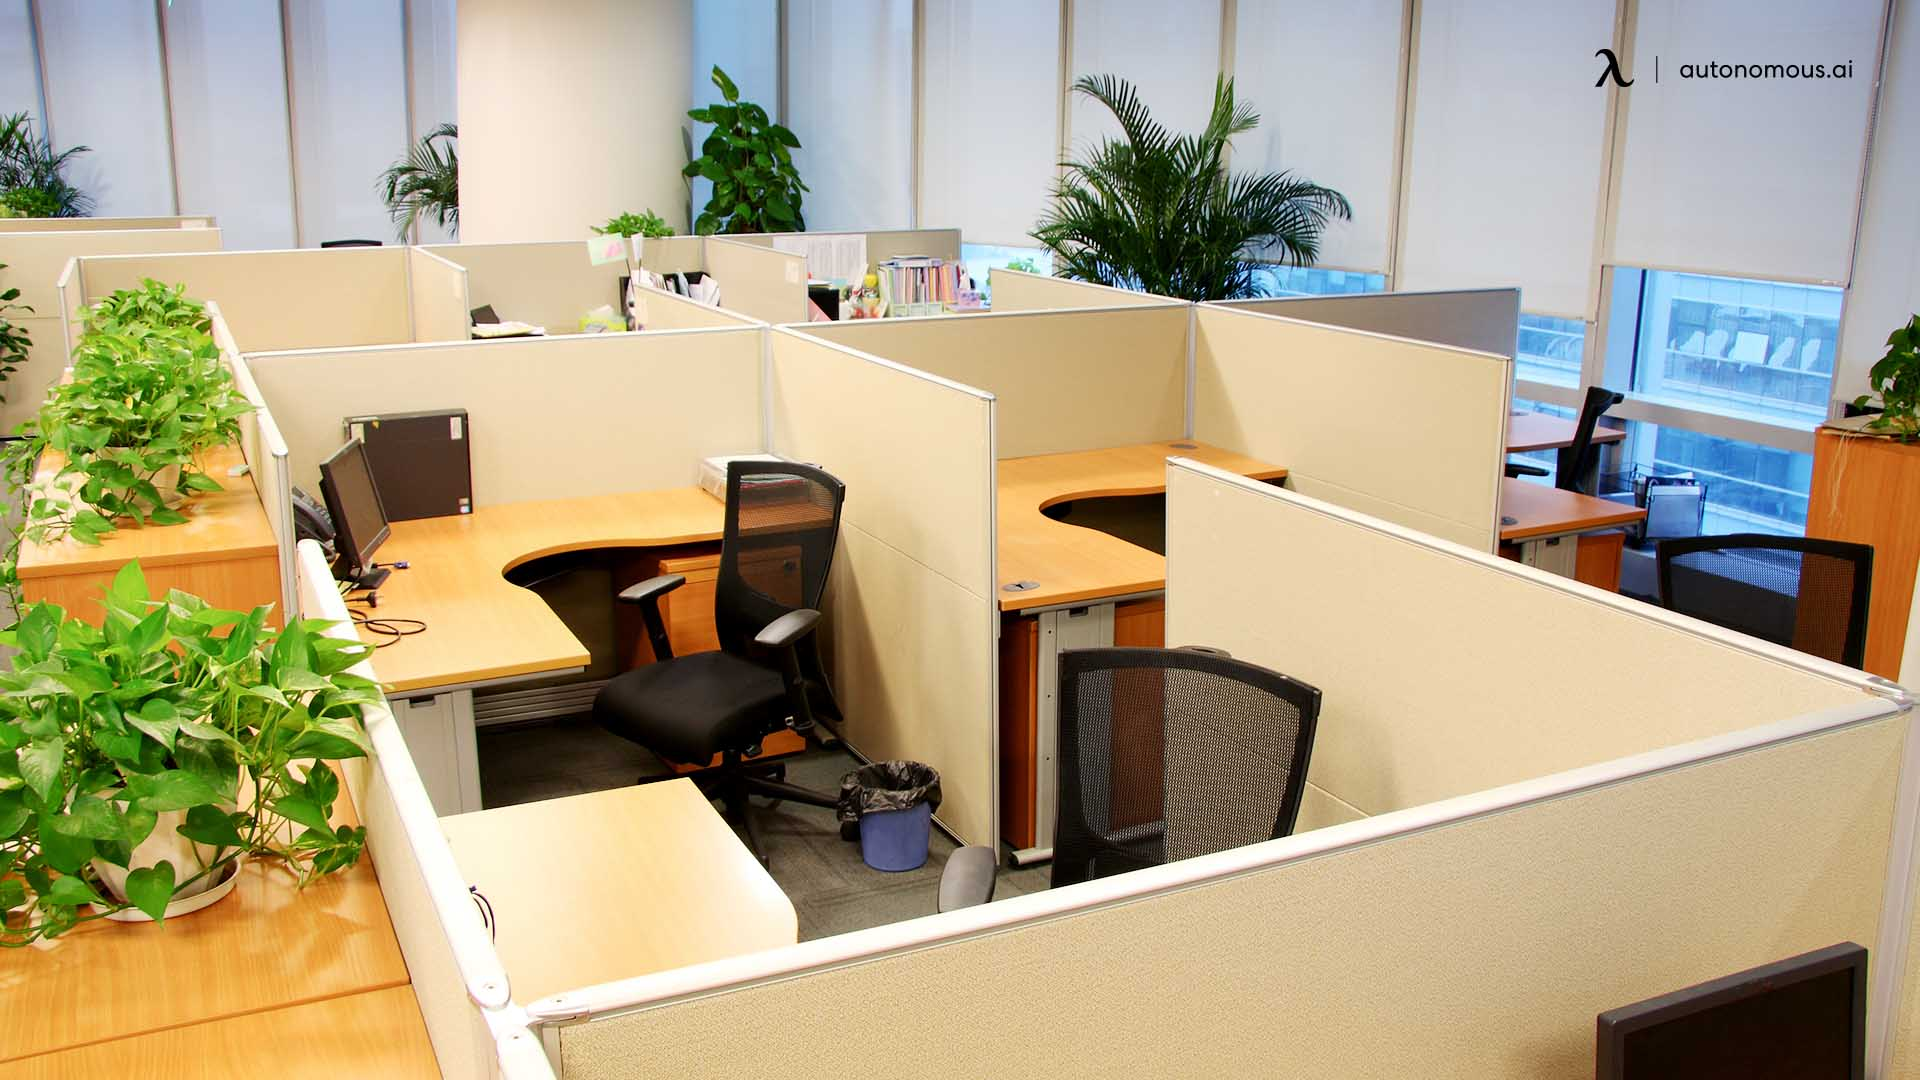 Redefined cubicle for employees